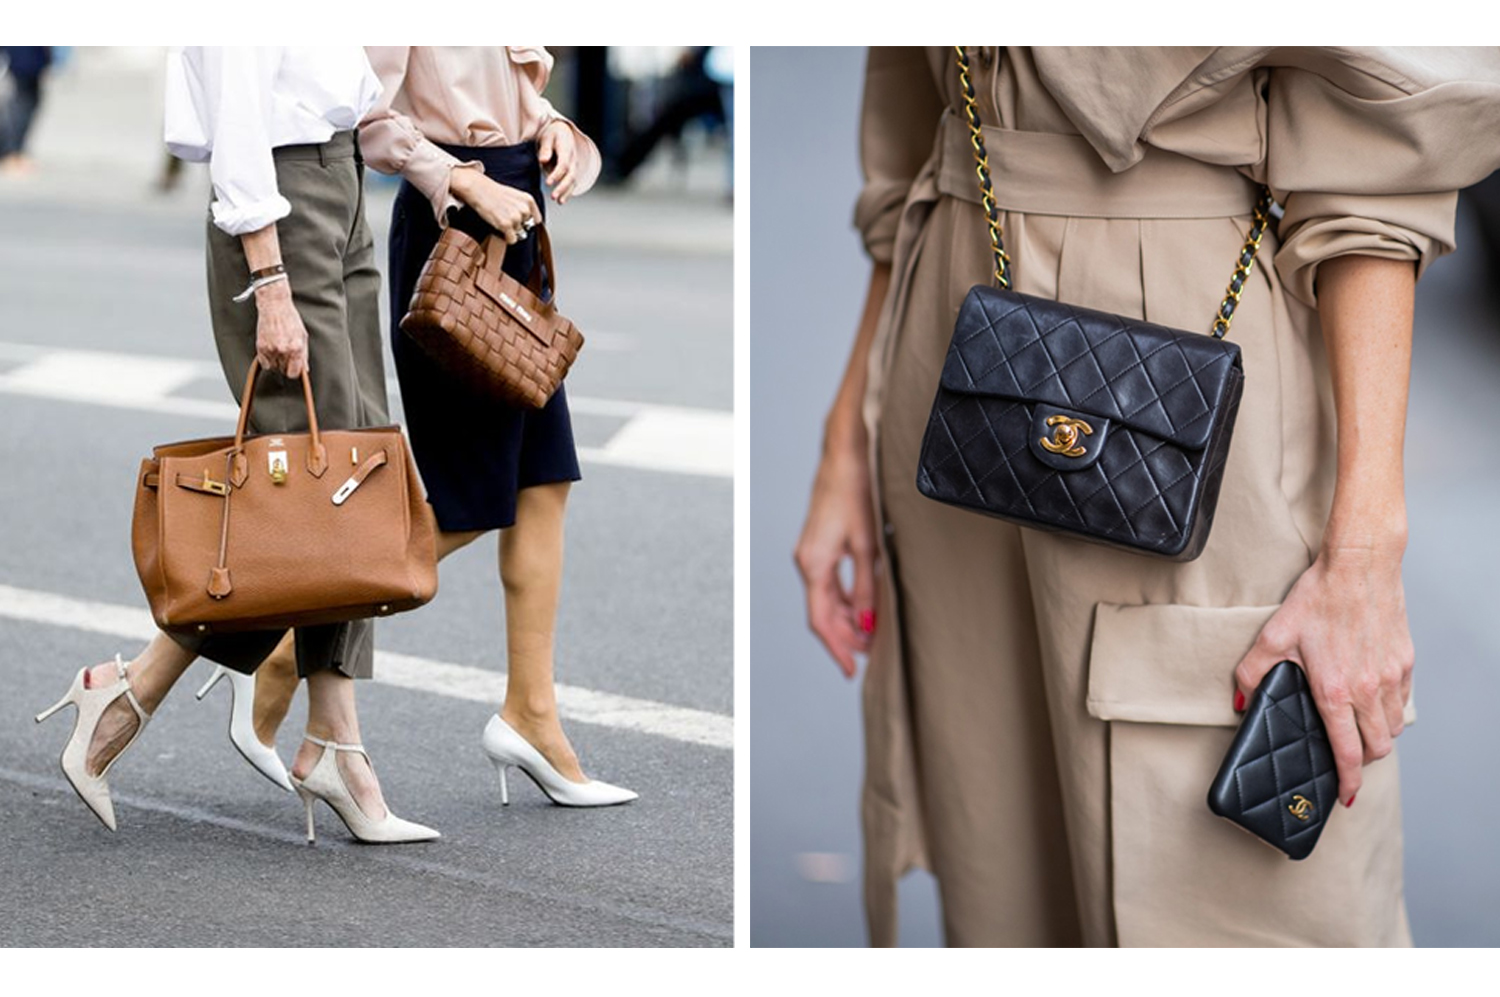 How To Buy Designer Bags For Less – Ultimate Guide To Score Your Dream Bag